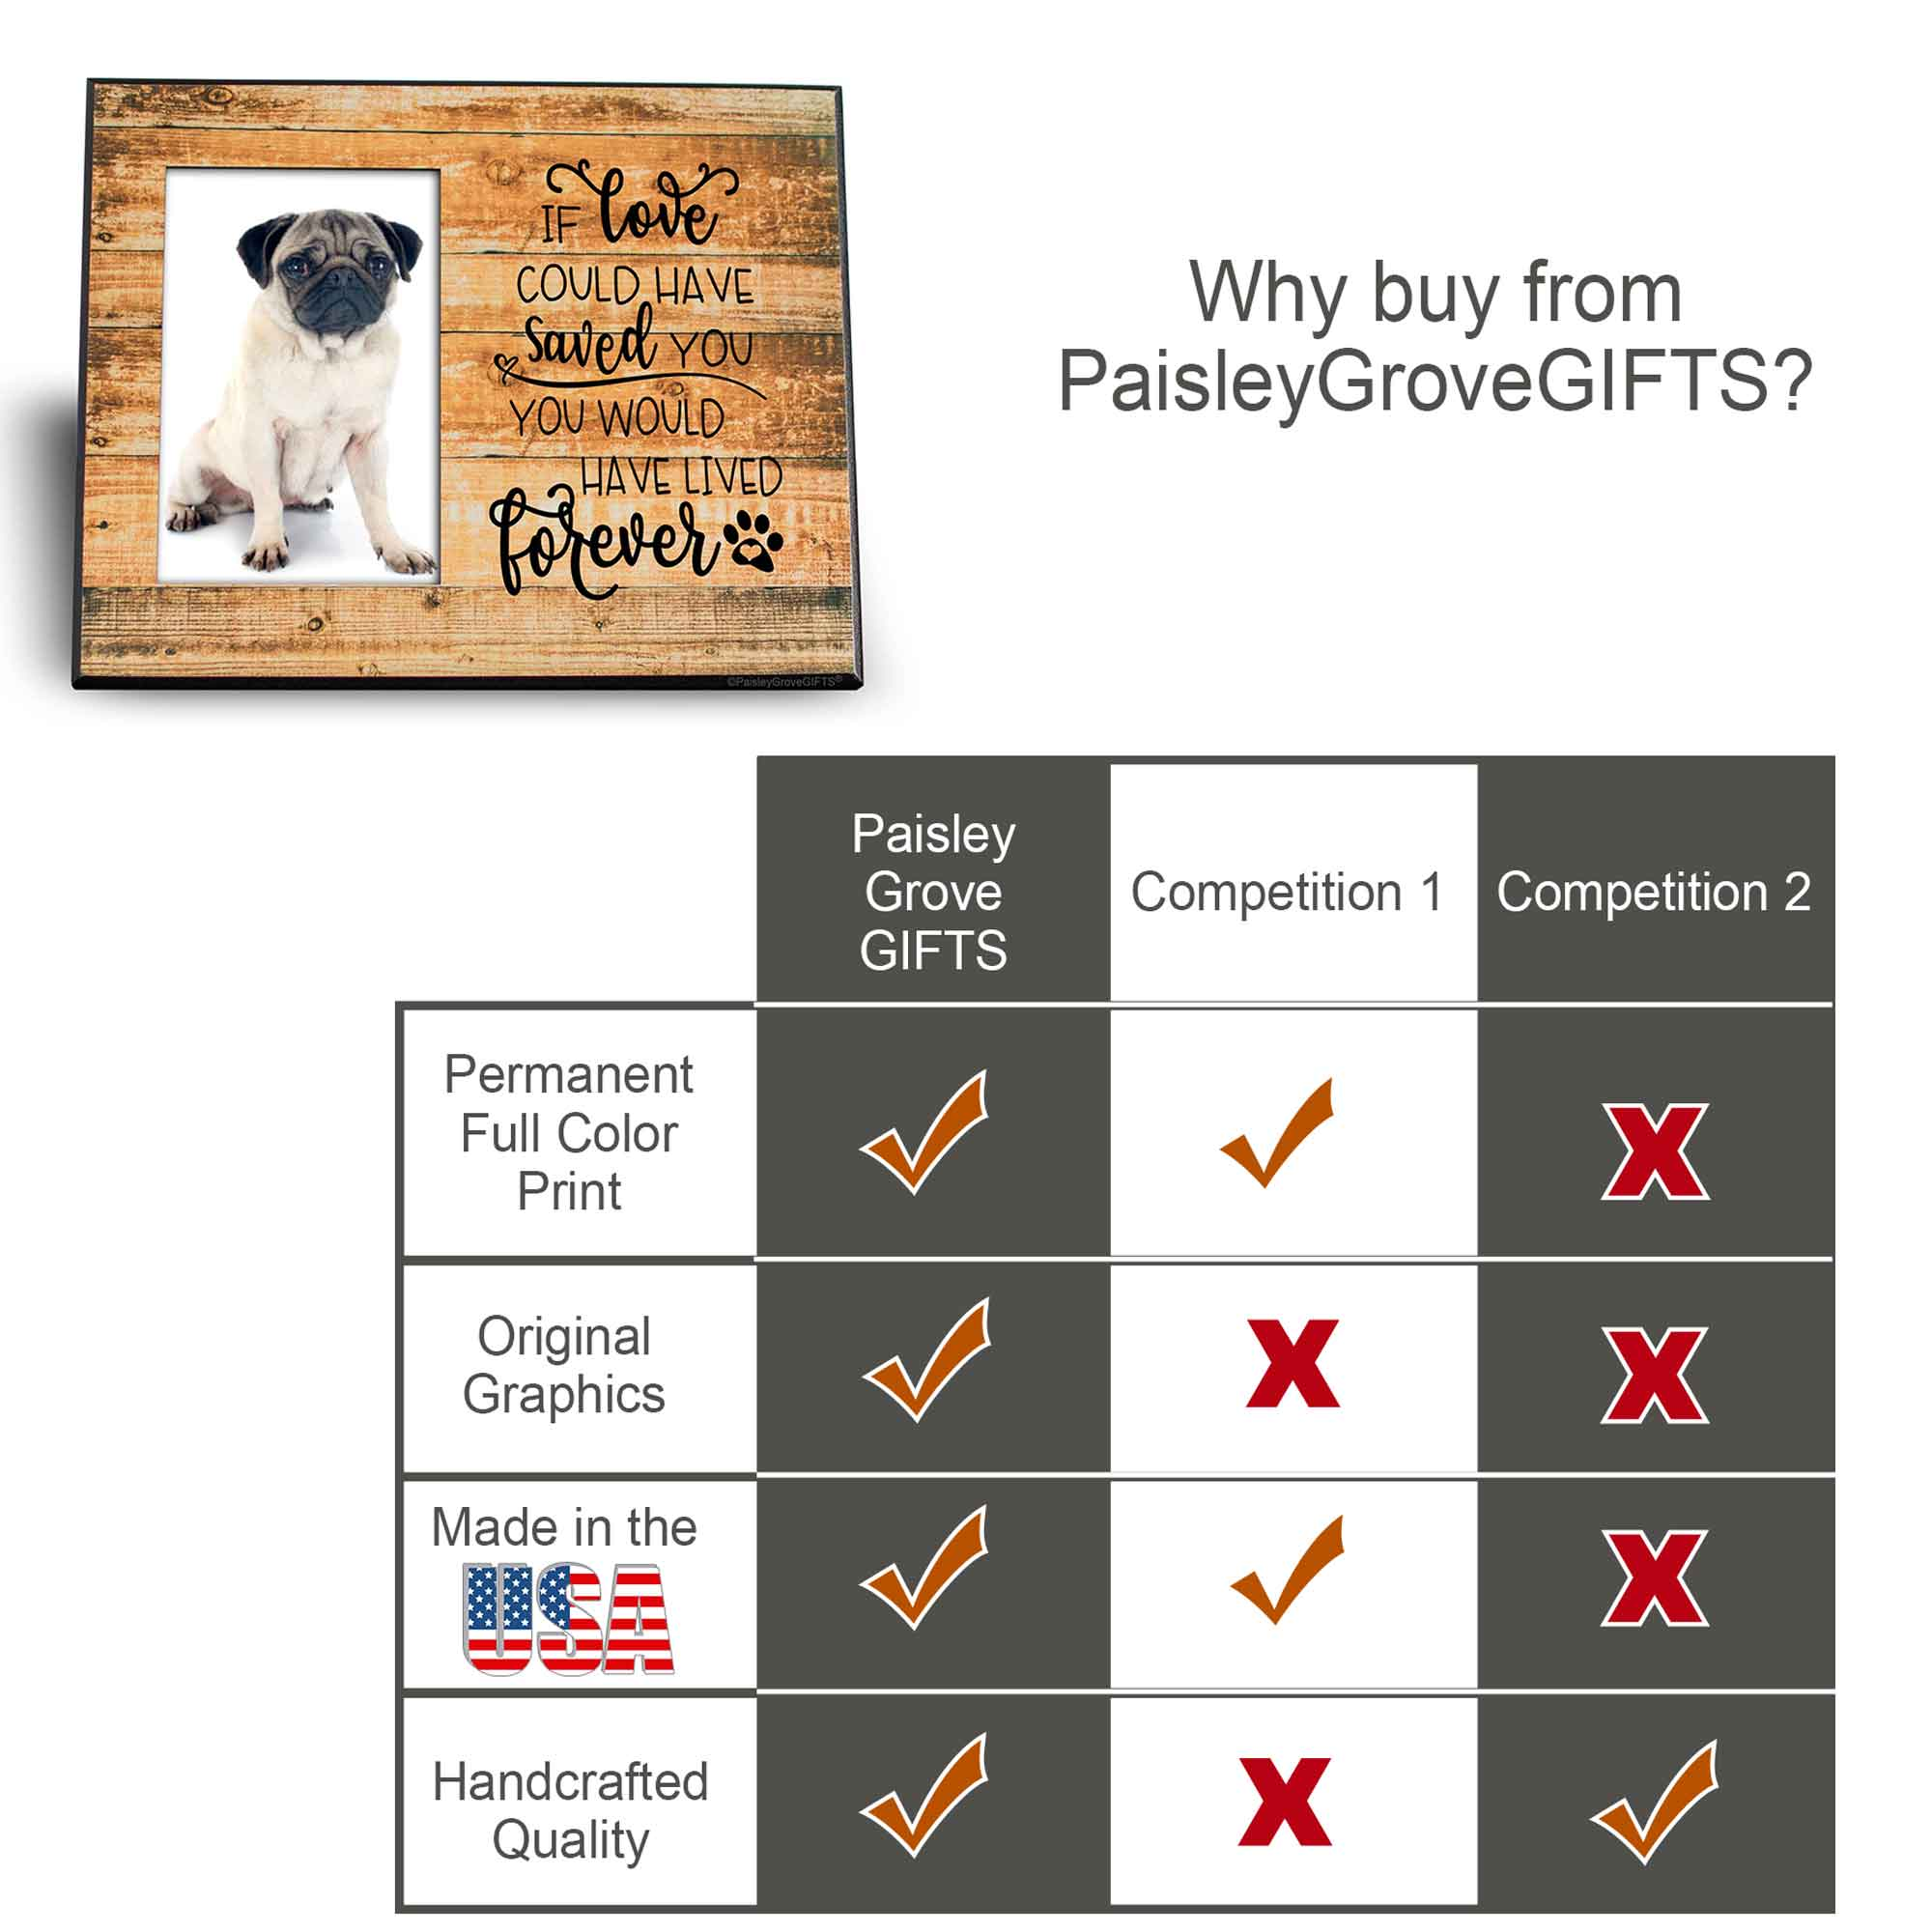 CopyrightPaisleyGroveGIFTS S280b PaisleytGroveGIFTS quality frame for Pet Loss Sympathy Keepsake Plaque